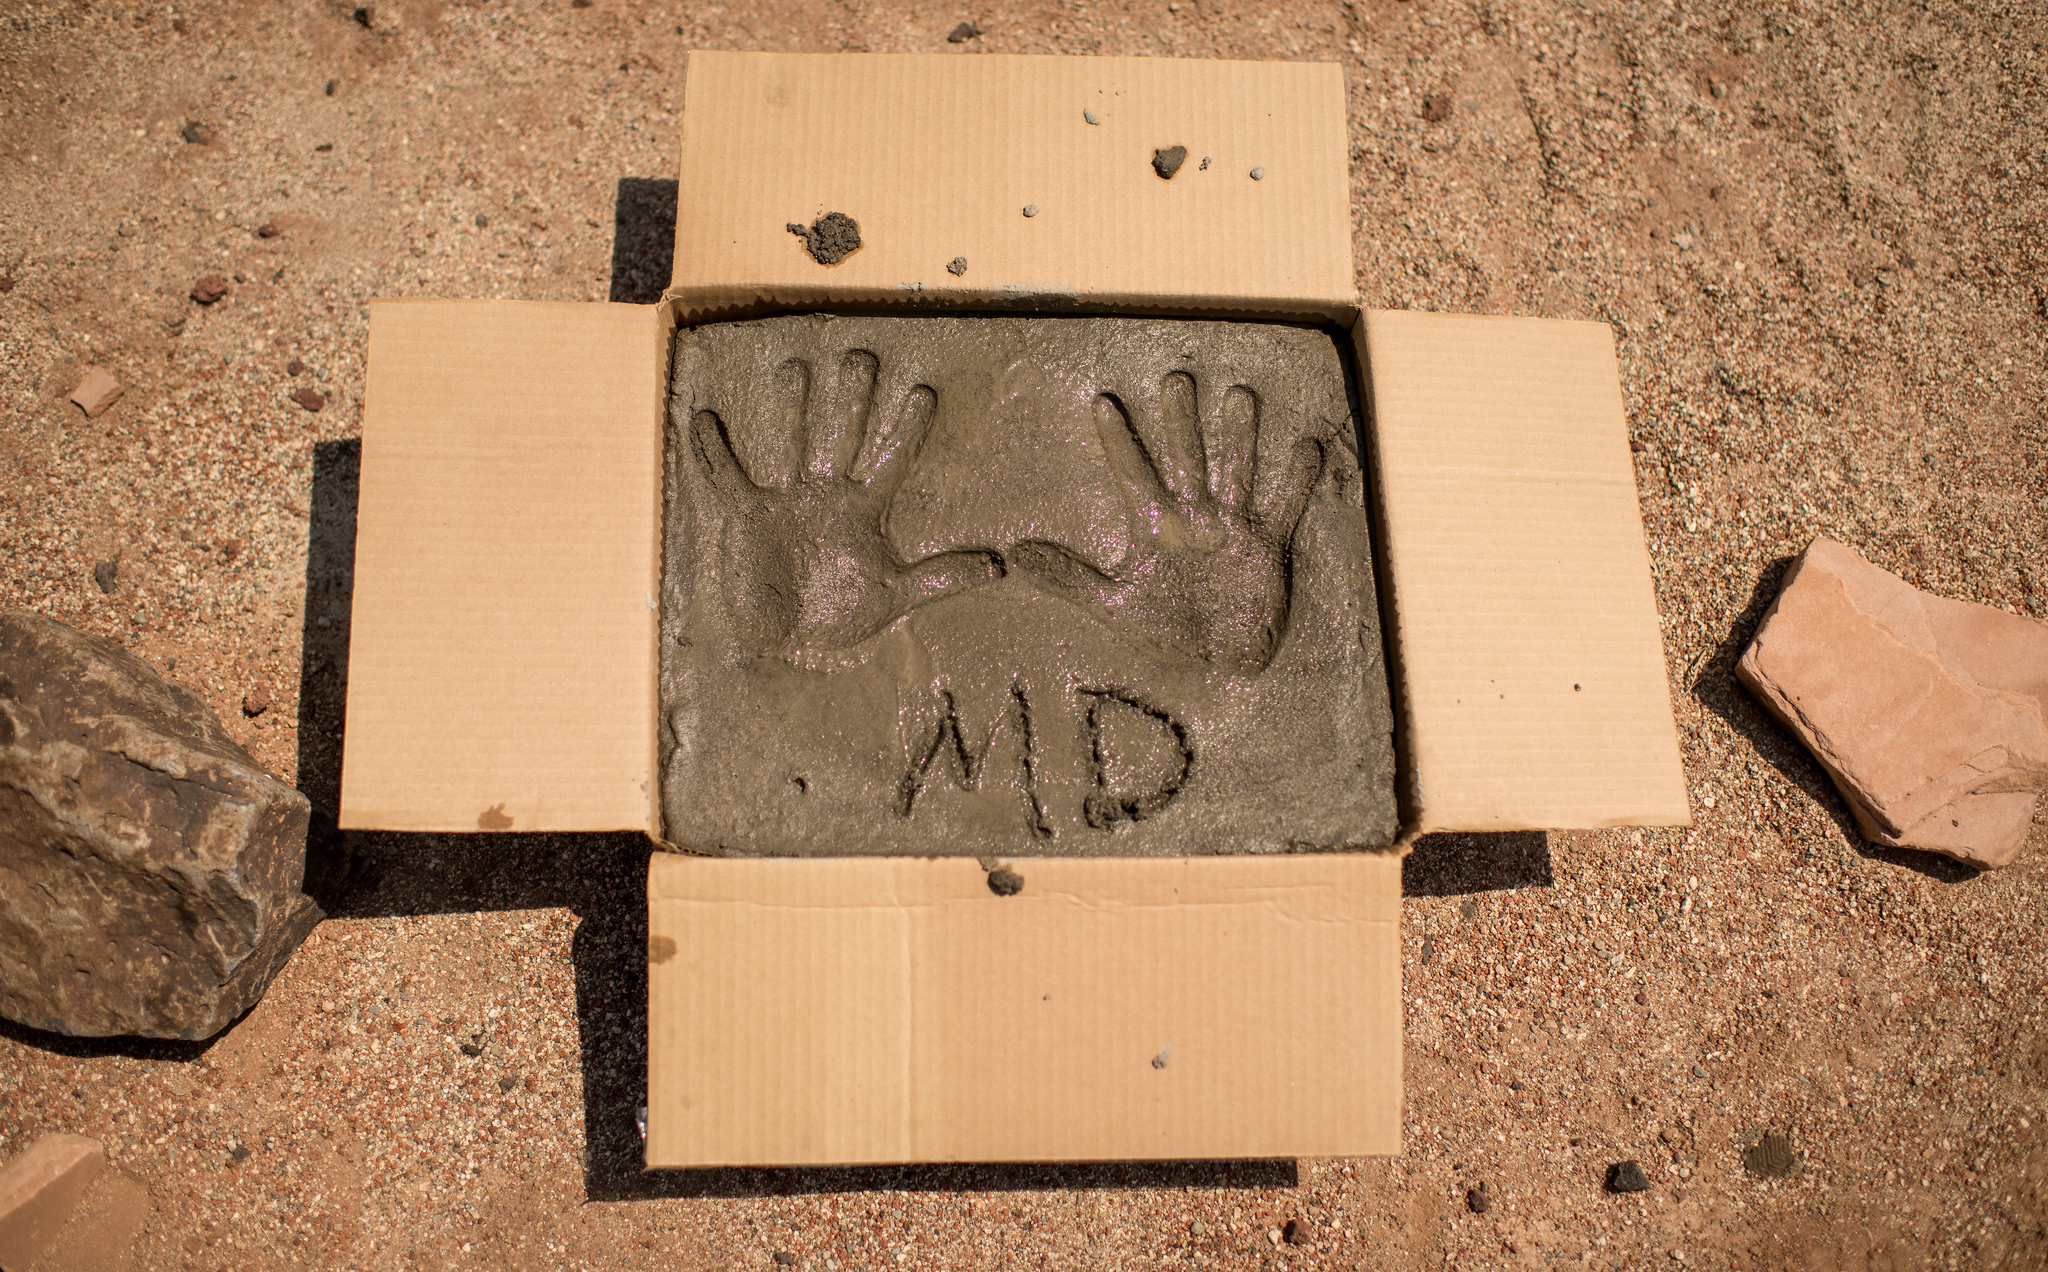 The Hand Prints of Actor Matt Damon